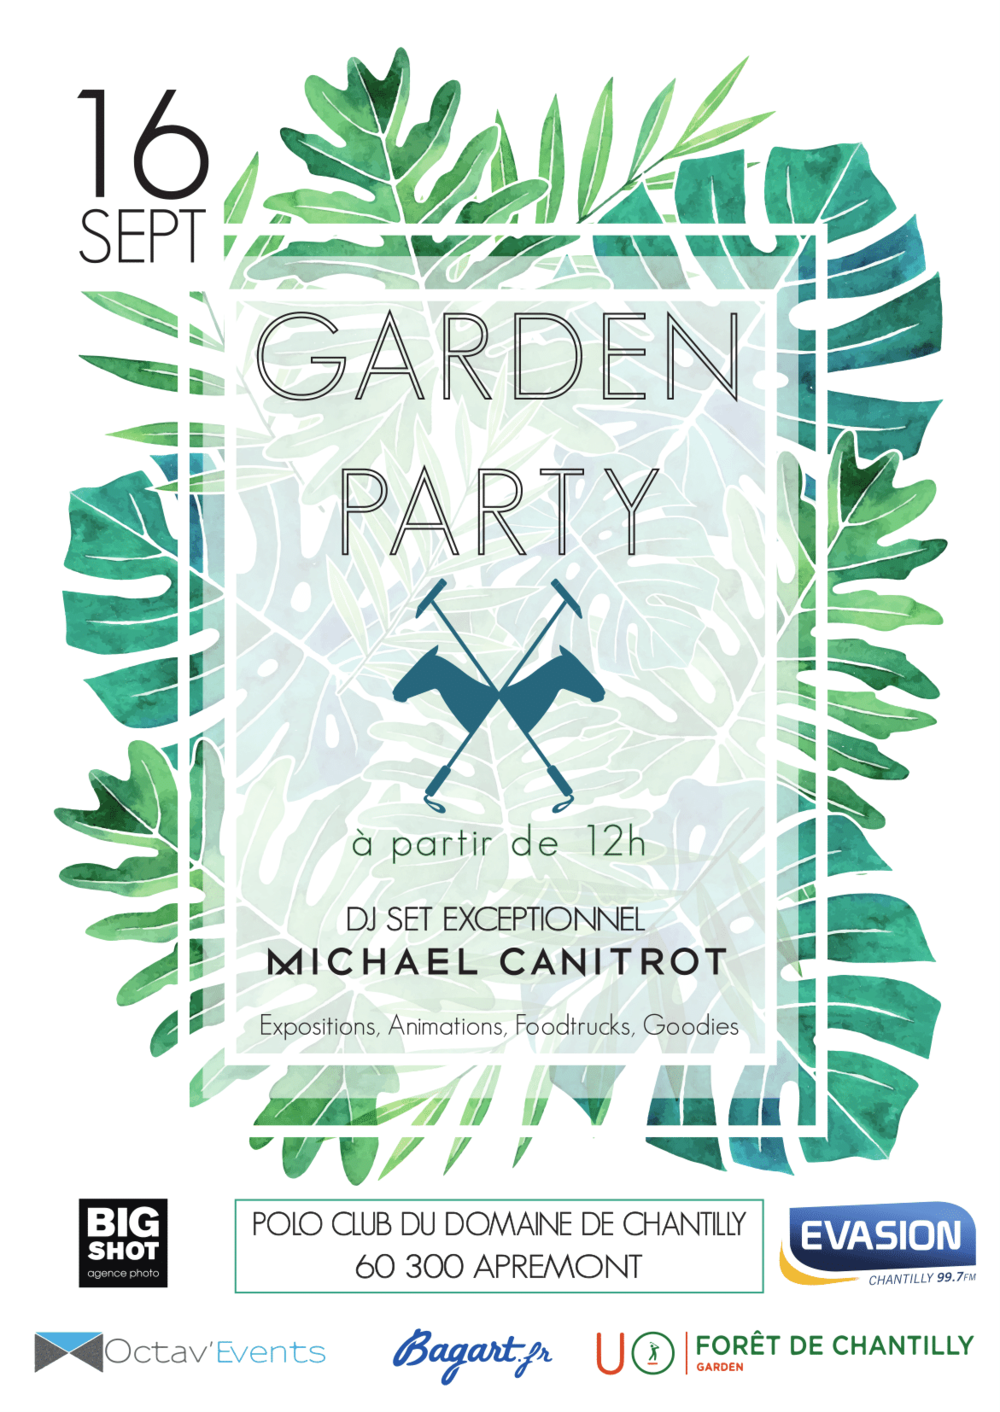 garden-party-fete-fiesta-dj-michael-canitrot-polo-chantilly-event